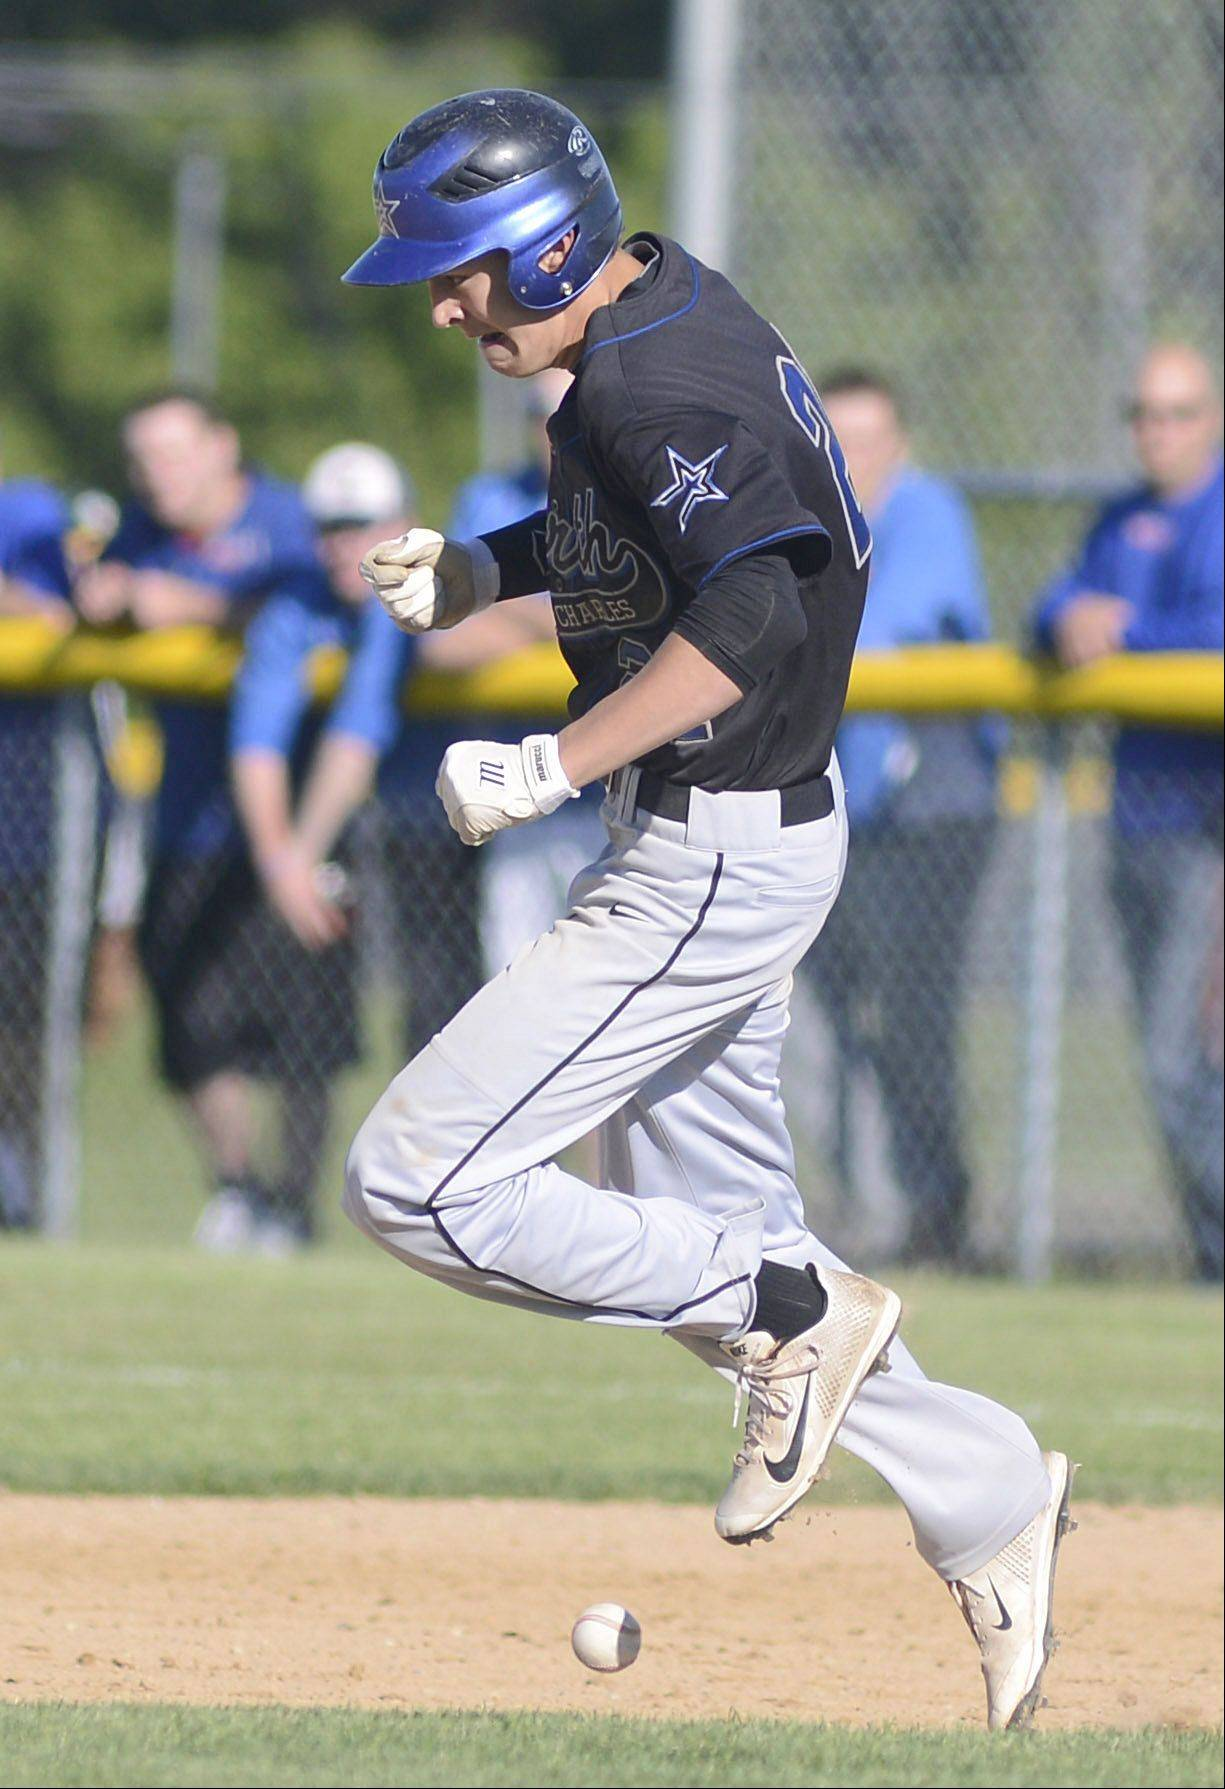 St. Charles North's John LeGare is called out as the ball knicks his shoe in the fourth inning Friday.